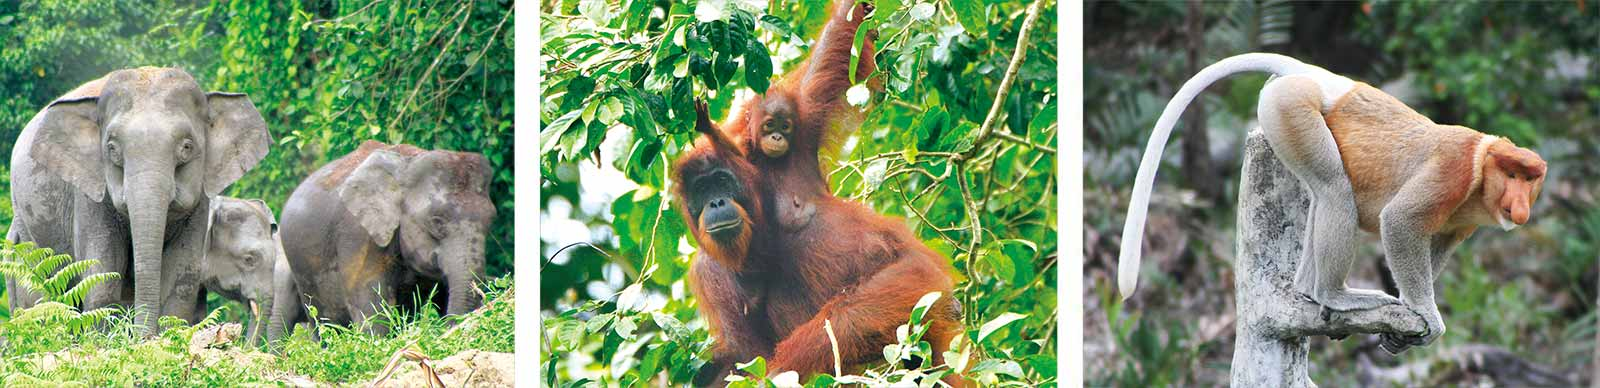 Some examples of the wildlife in Borneo